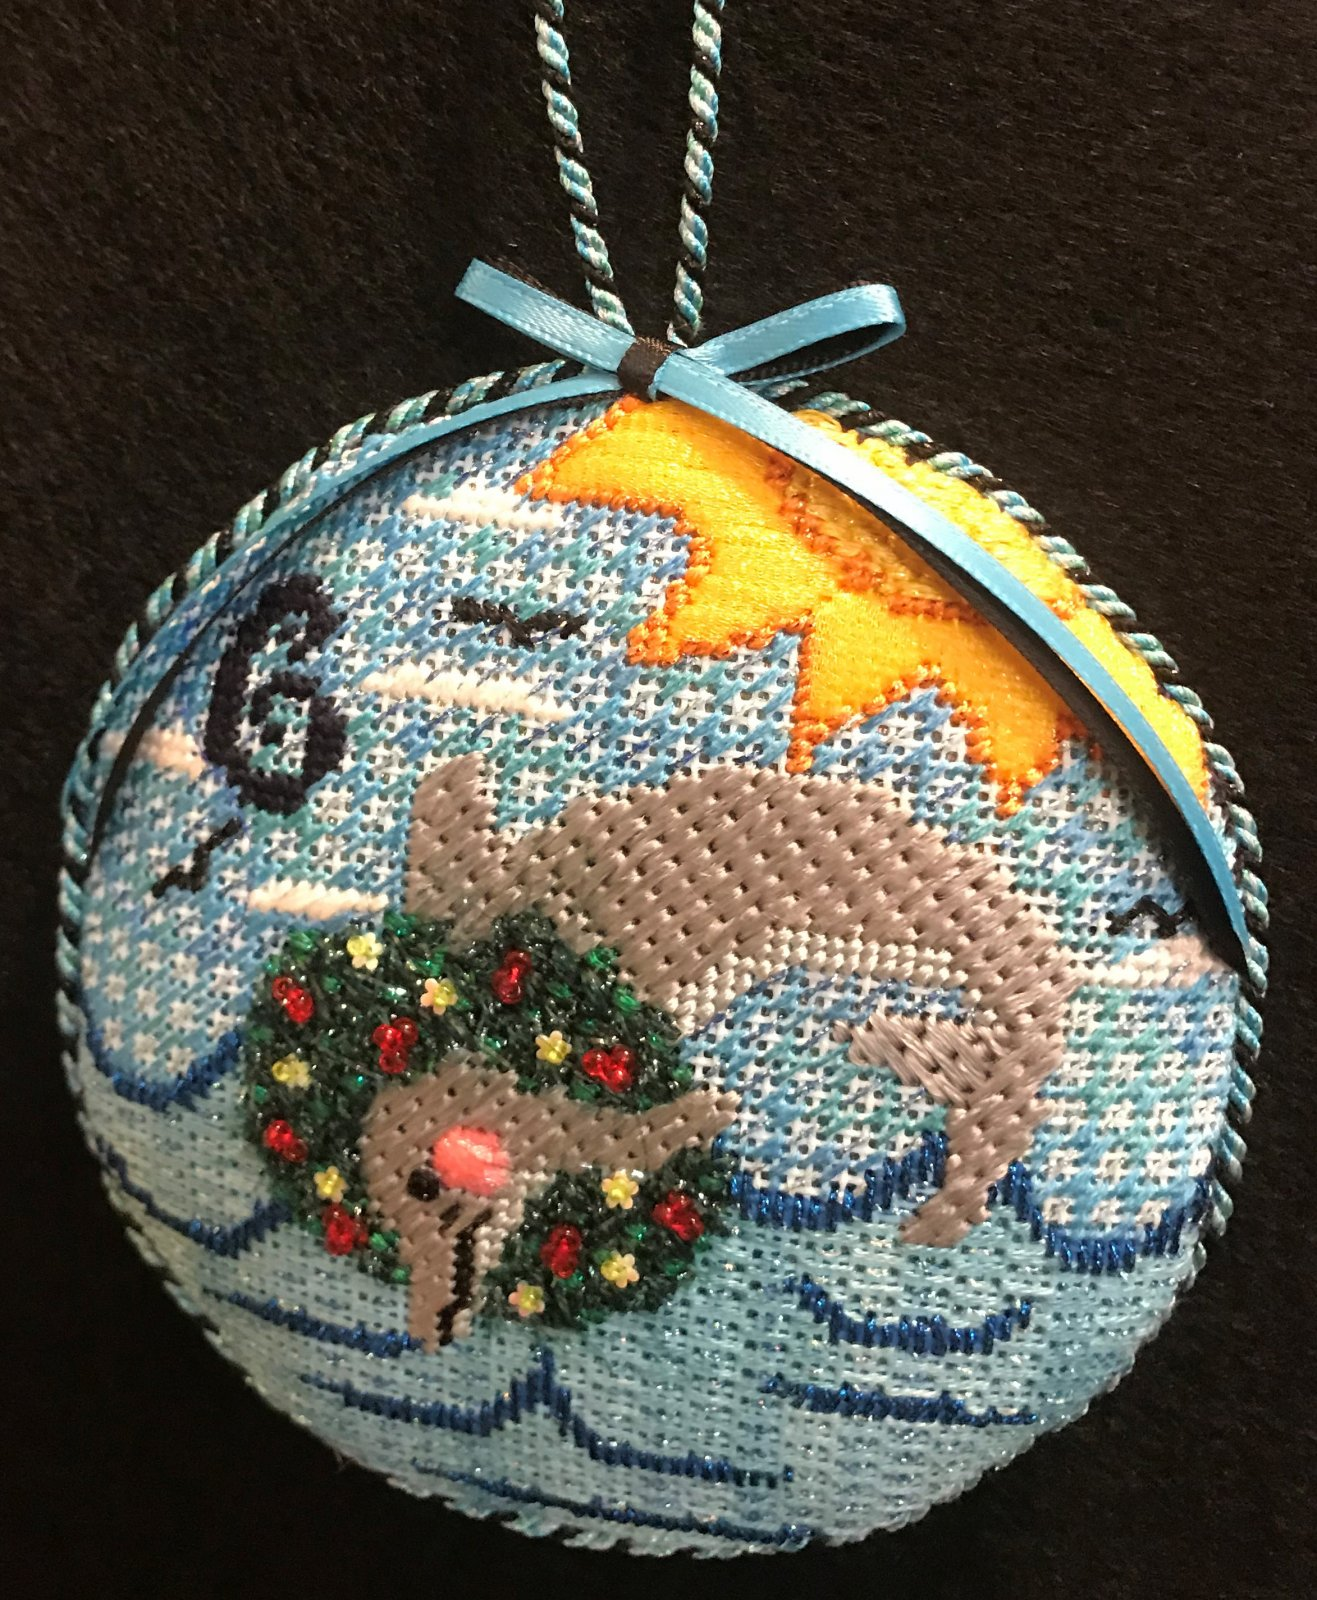 #6 Dolphin Ornament - stitched by Stacey G.